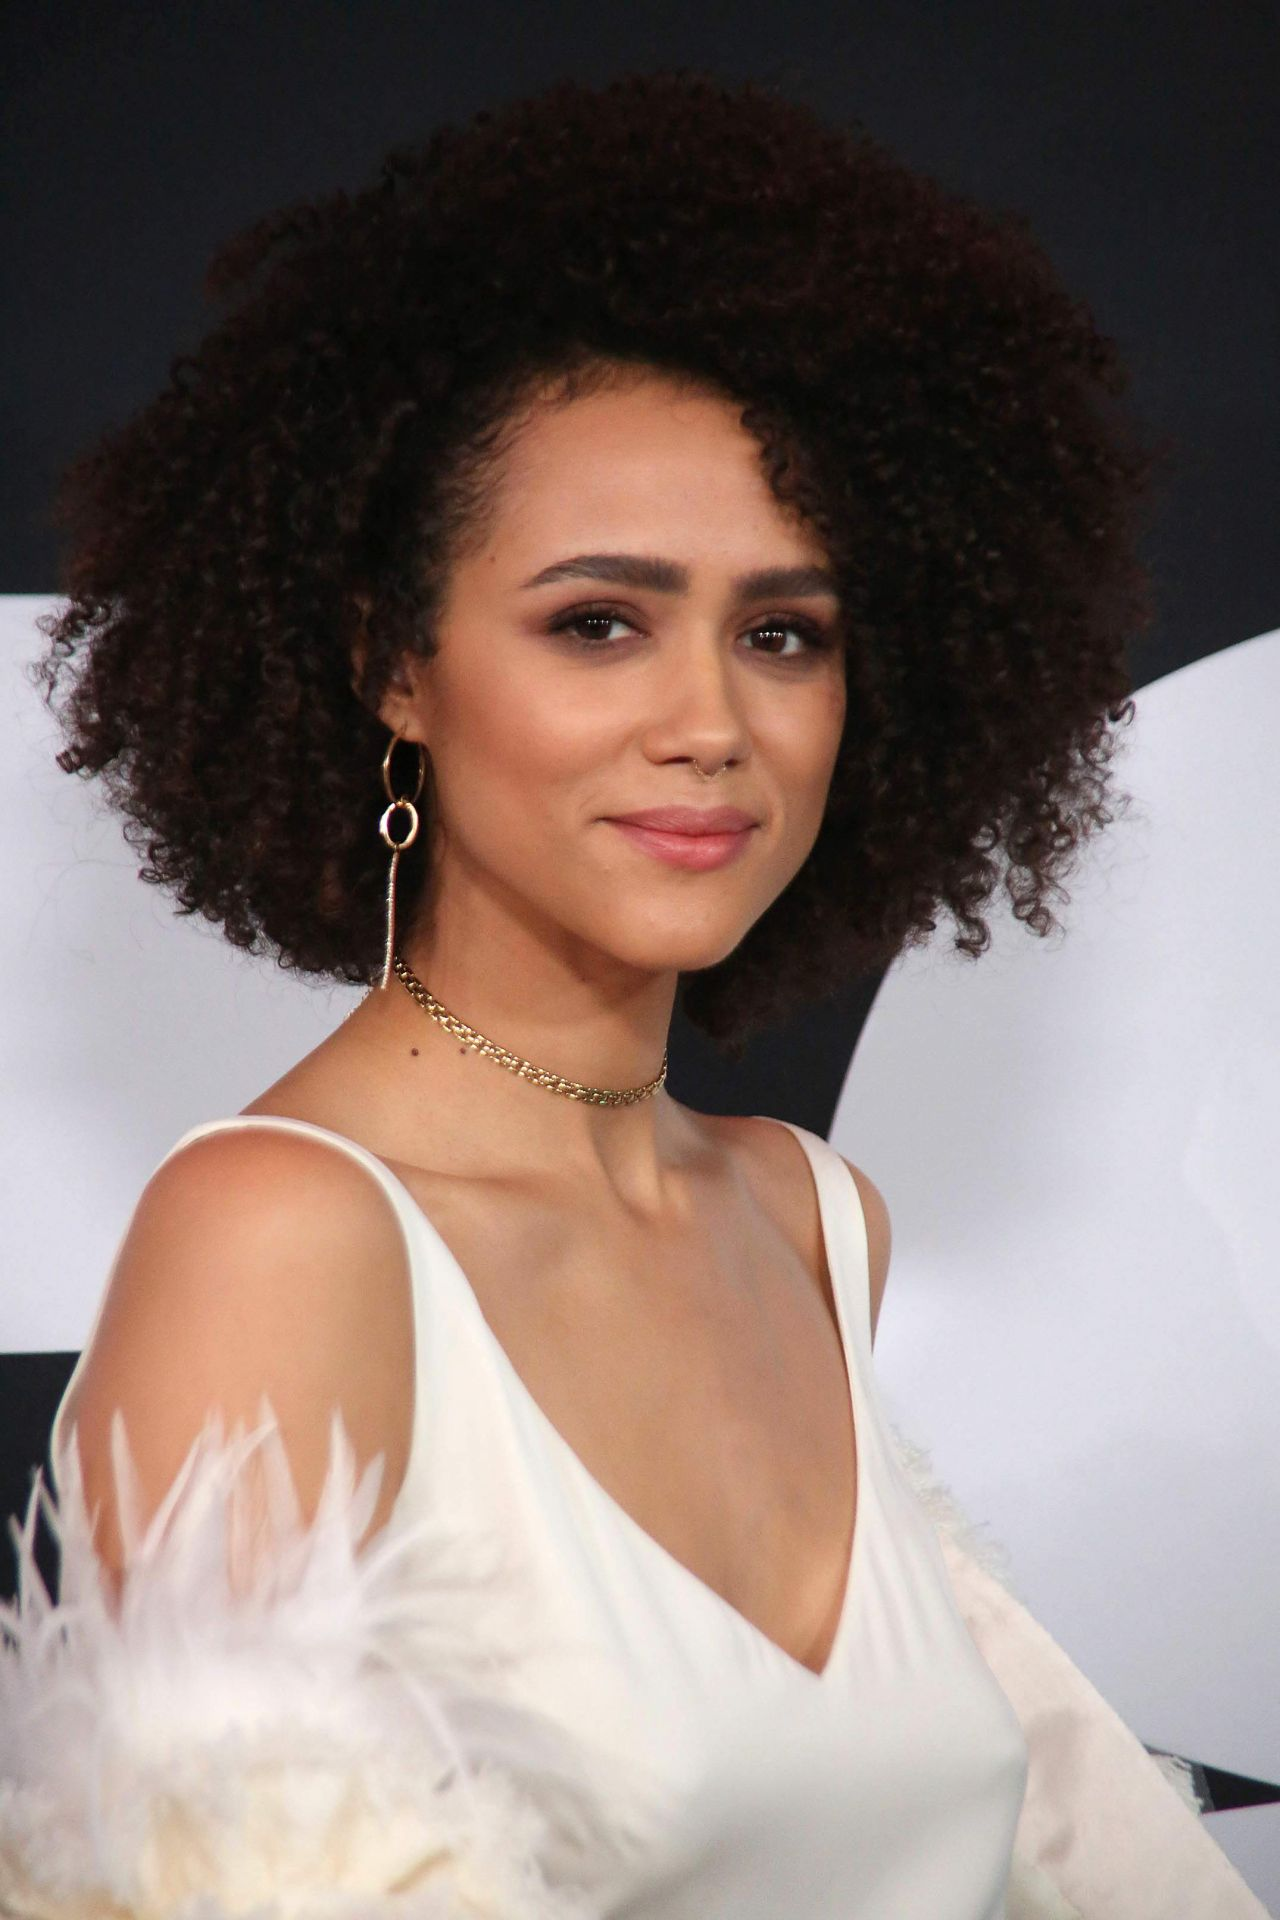 nathalie emmanuel photo 78 of 103 pics, wallpaper - photo #922924